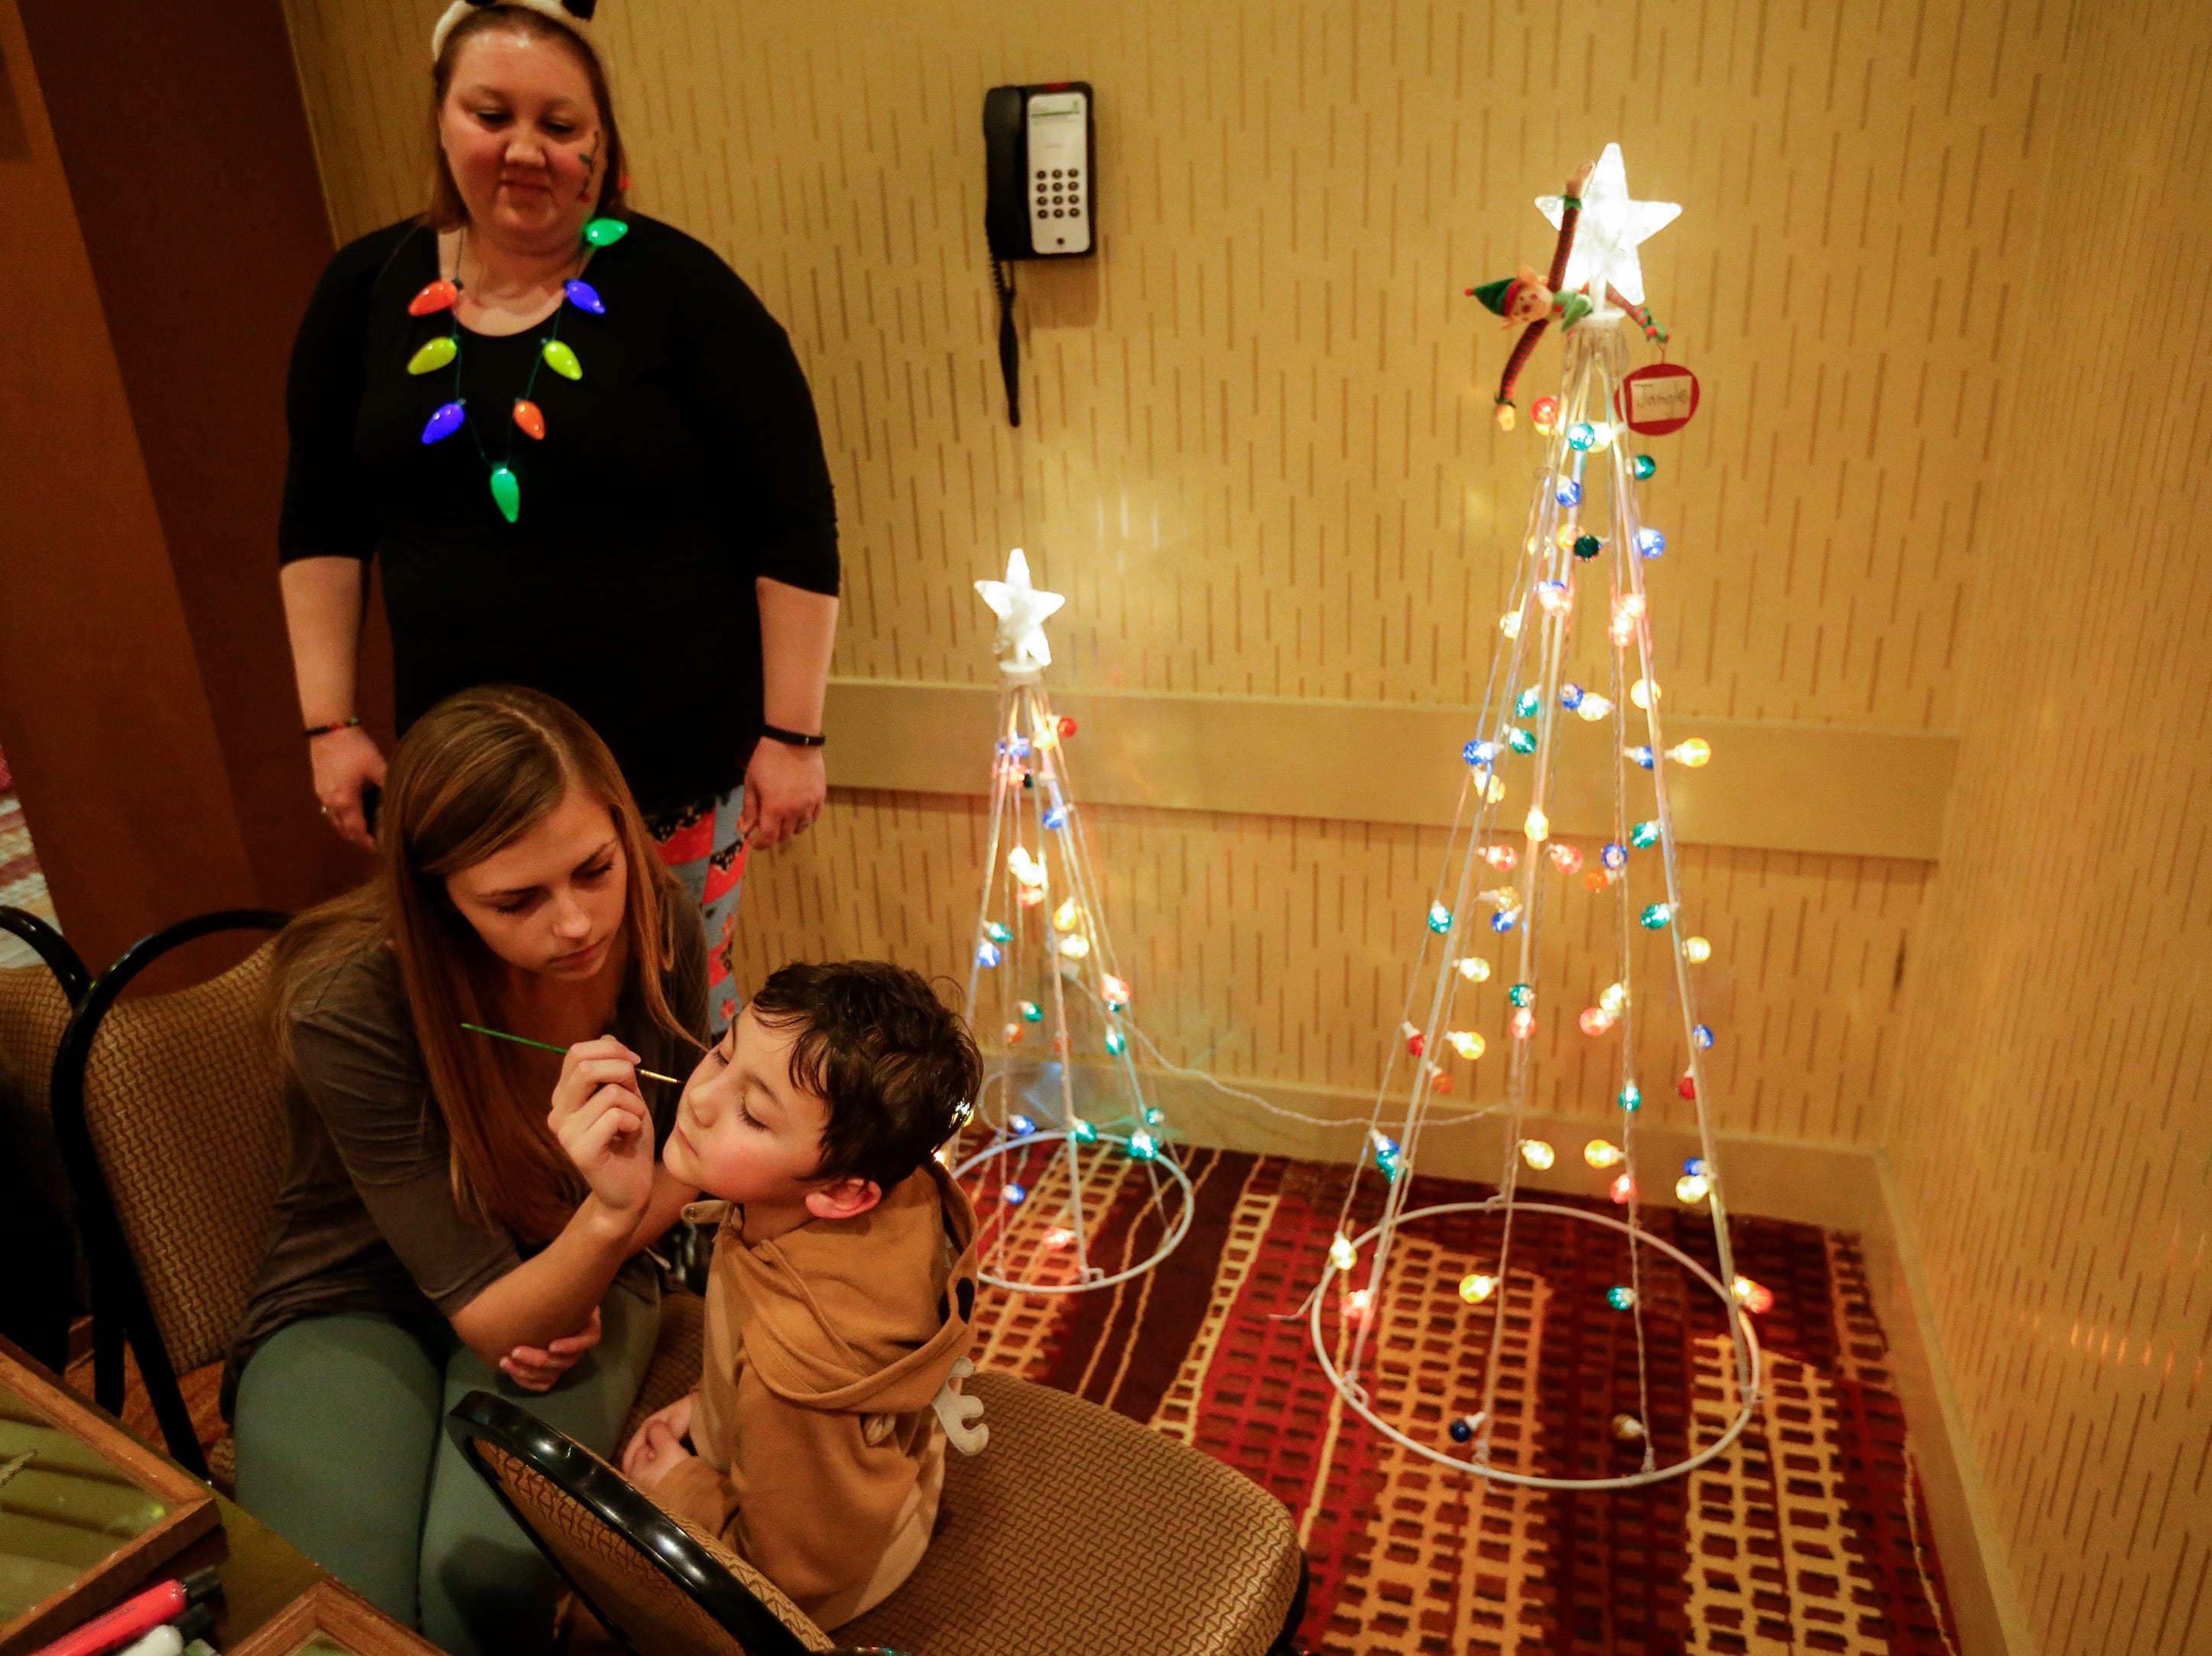 Jace Buchanan, 4, of Neenah, gets his face painted by Taylor Brown at Santa's North Pole at the Holiday Inn Saturday, December 8, 2018, in Manitowoc, Wis. Joshua Clark/USA TODAY NETWORK-Wisconsin